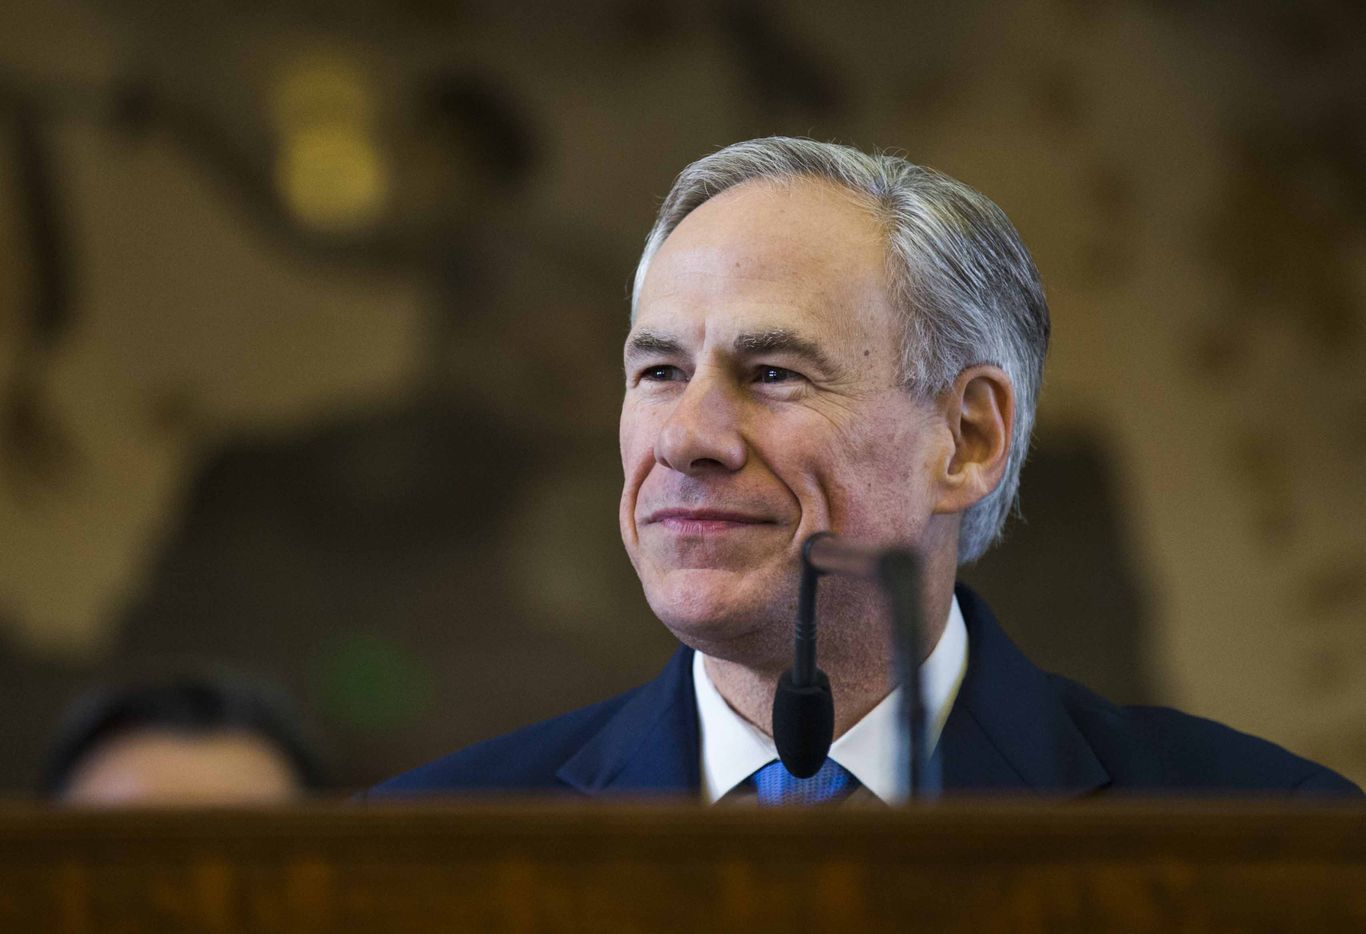 Texas Gov. Greg Abbott speaks during the first day of the 85th Texas Legislative Session at the Texas State Capitol in Austin.